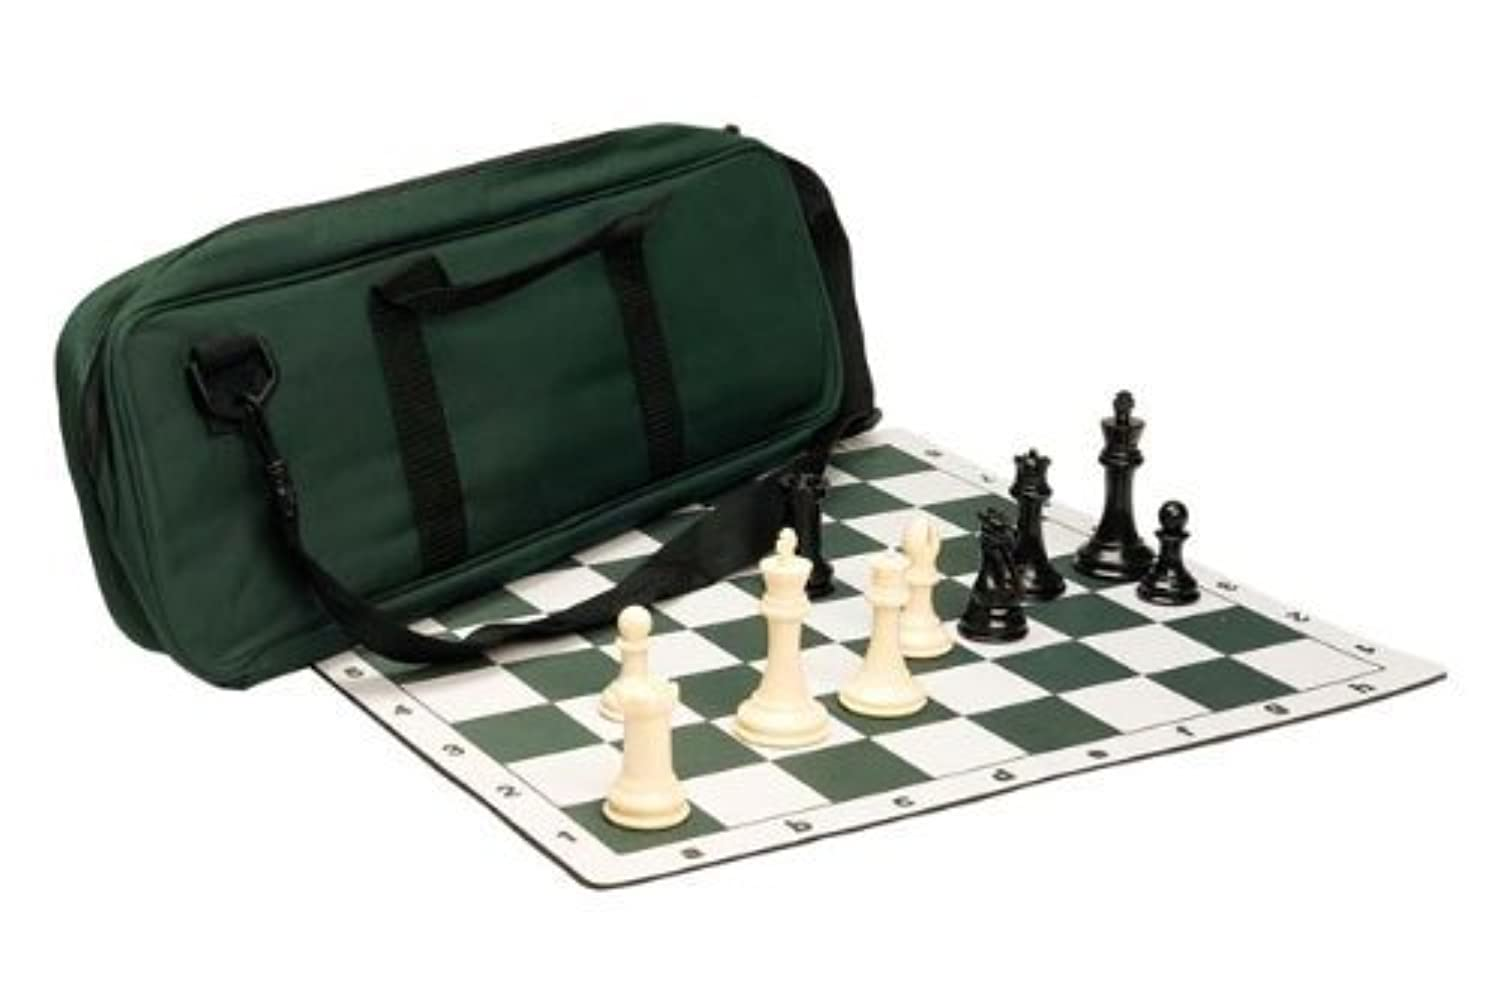 Premium Chess Set Combo - Plastic Chess Pieces | Tournament Chess Board | Deluxe Chess Bag by